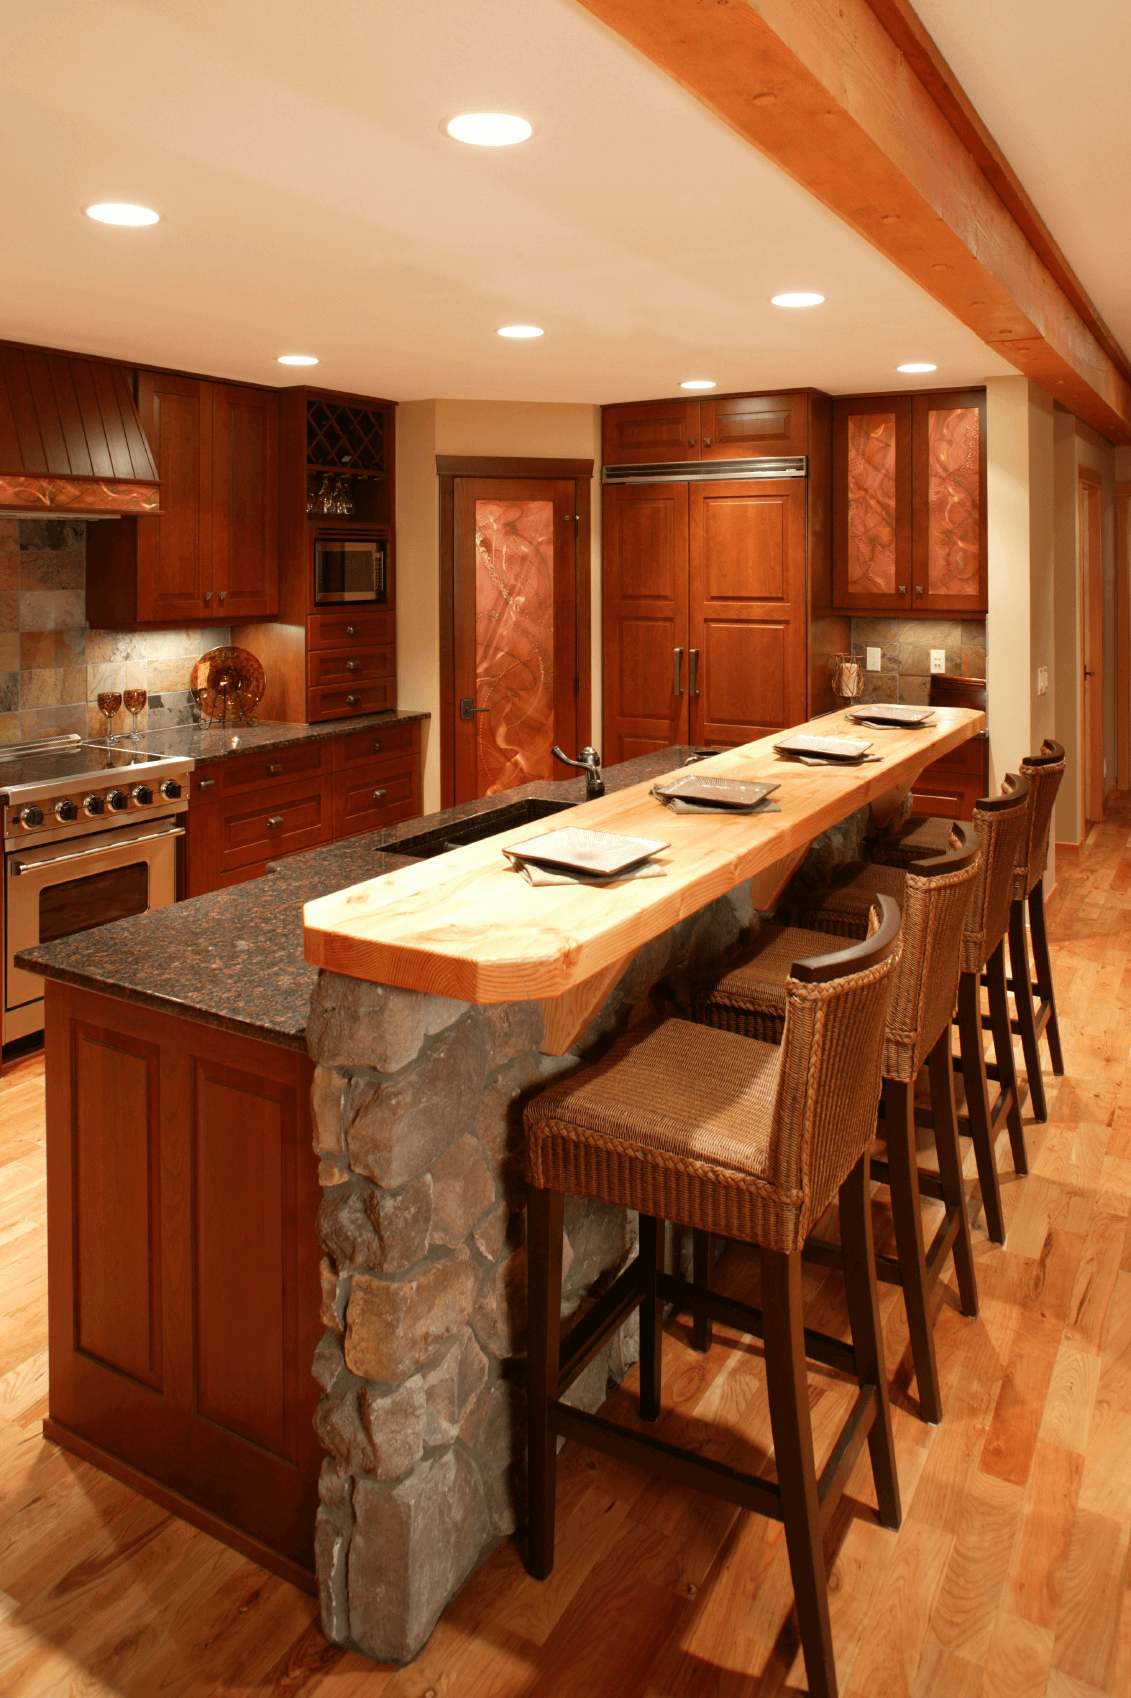 Rustic 2 Tier Kitchen Island With Breakfast Bar And Granite Top Kitchen Bar Design Luxury Kitchen Island Luxury Kitchens